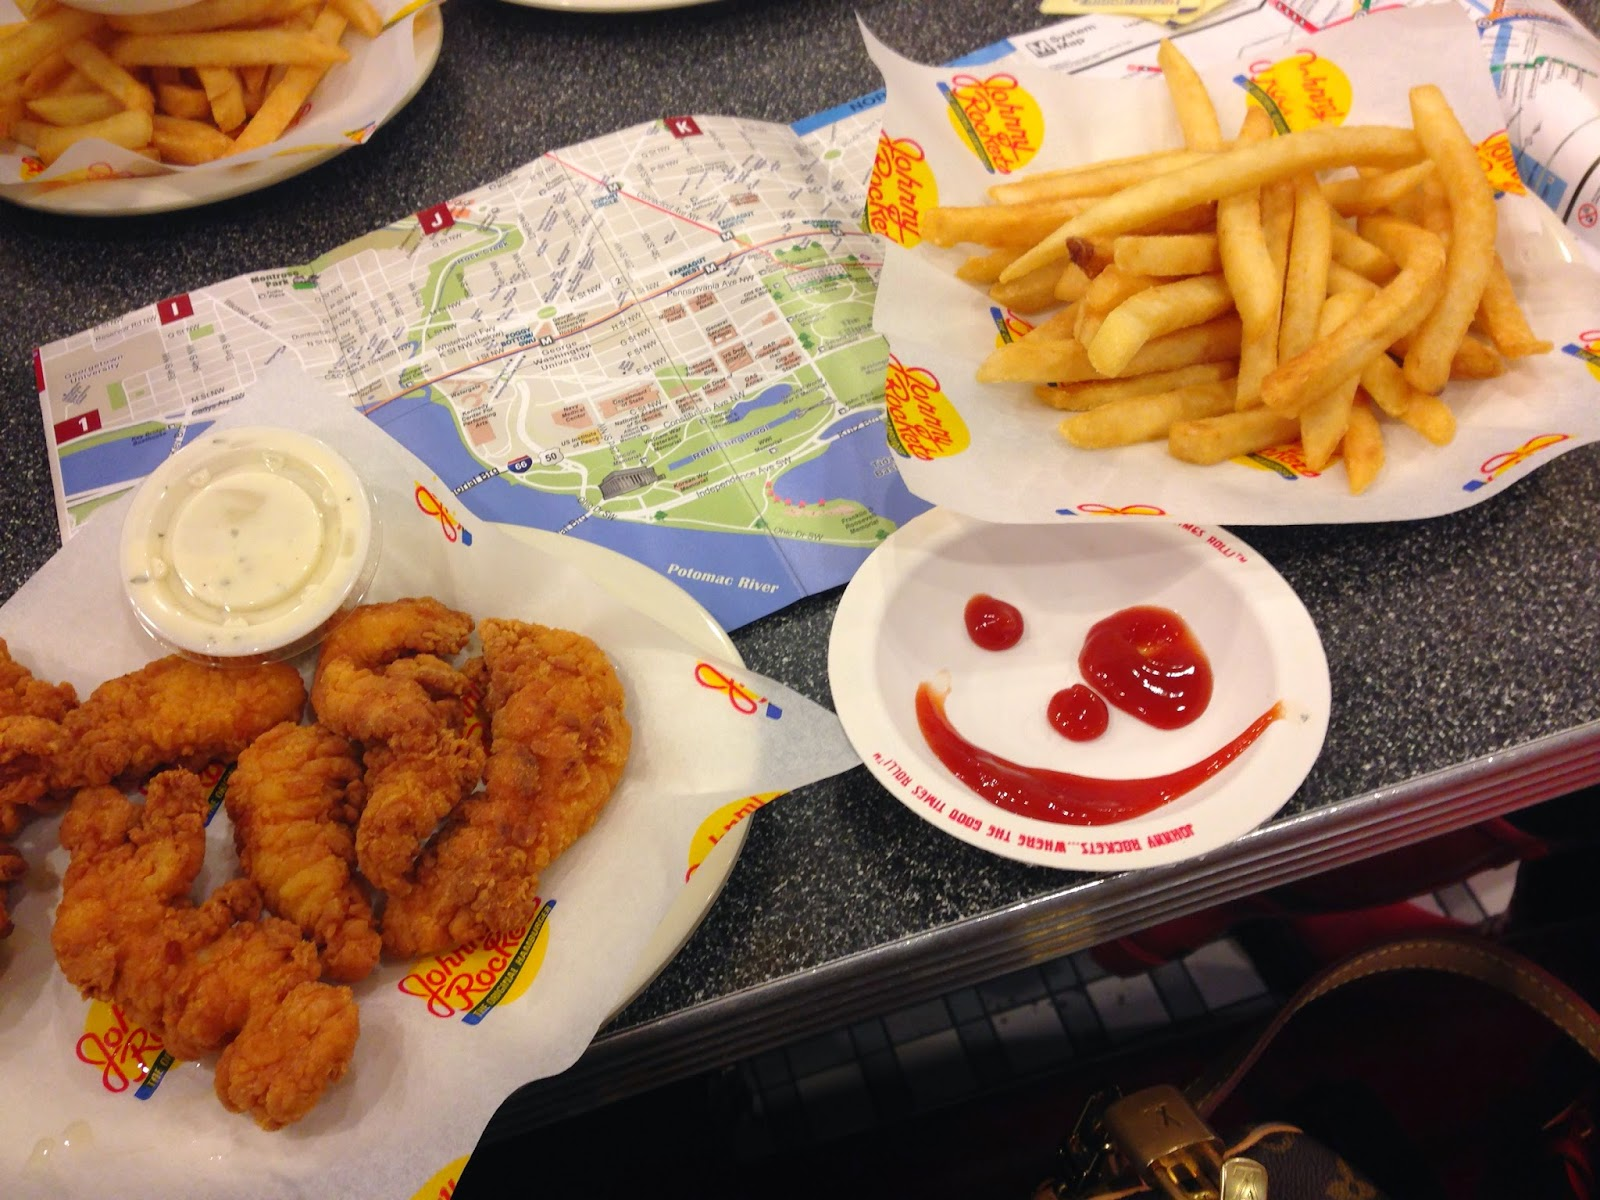 Johnny Rockets chicken and french fries